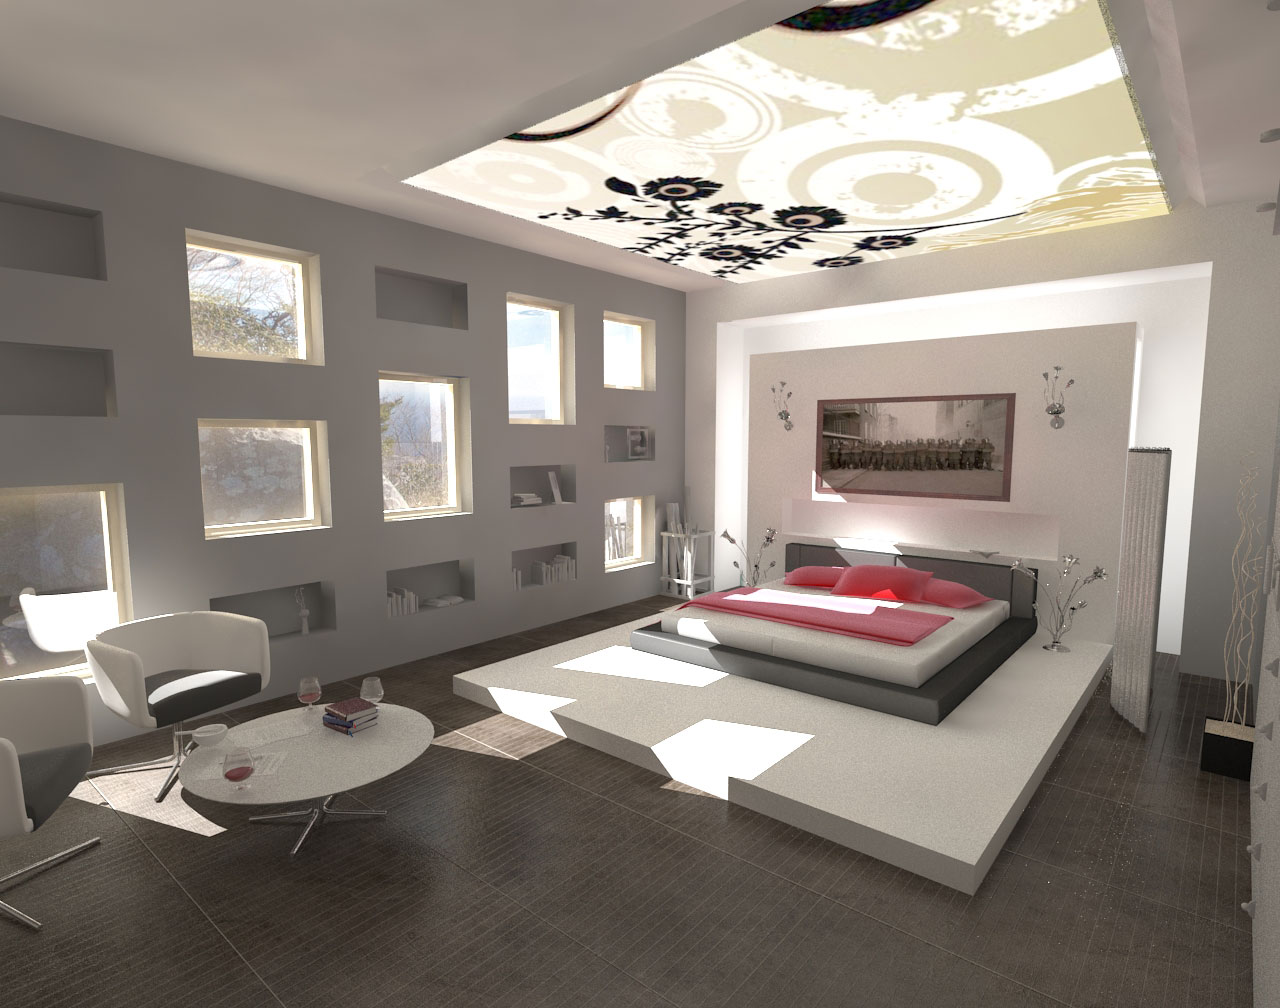 Decorations minimalist design modern bedroom interior for Modern minimalist bedroom furniture